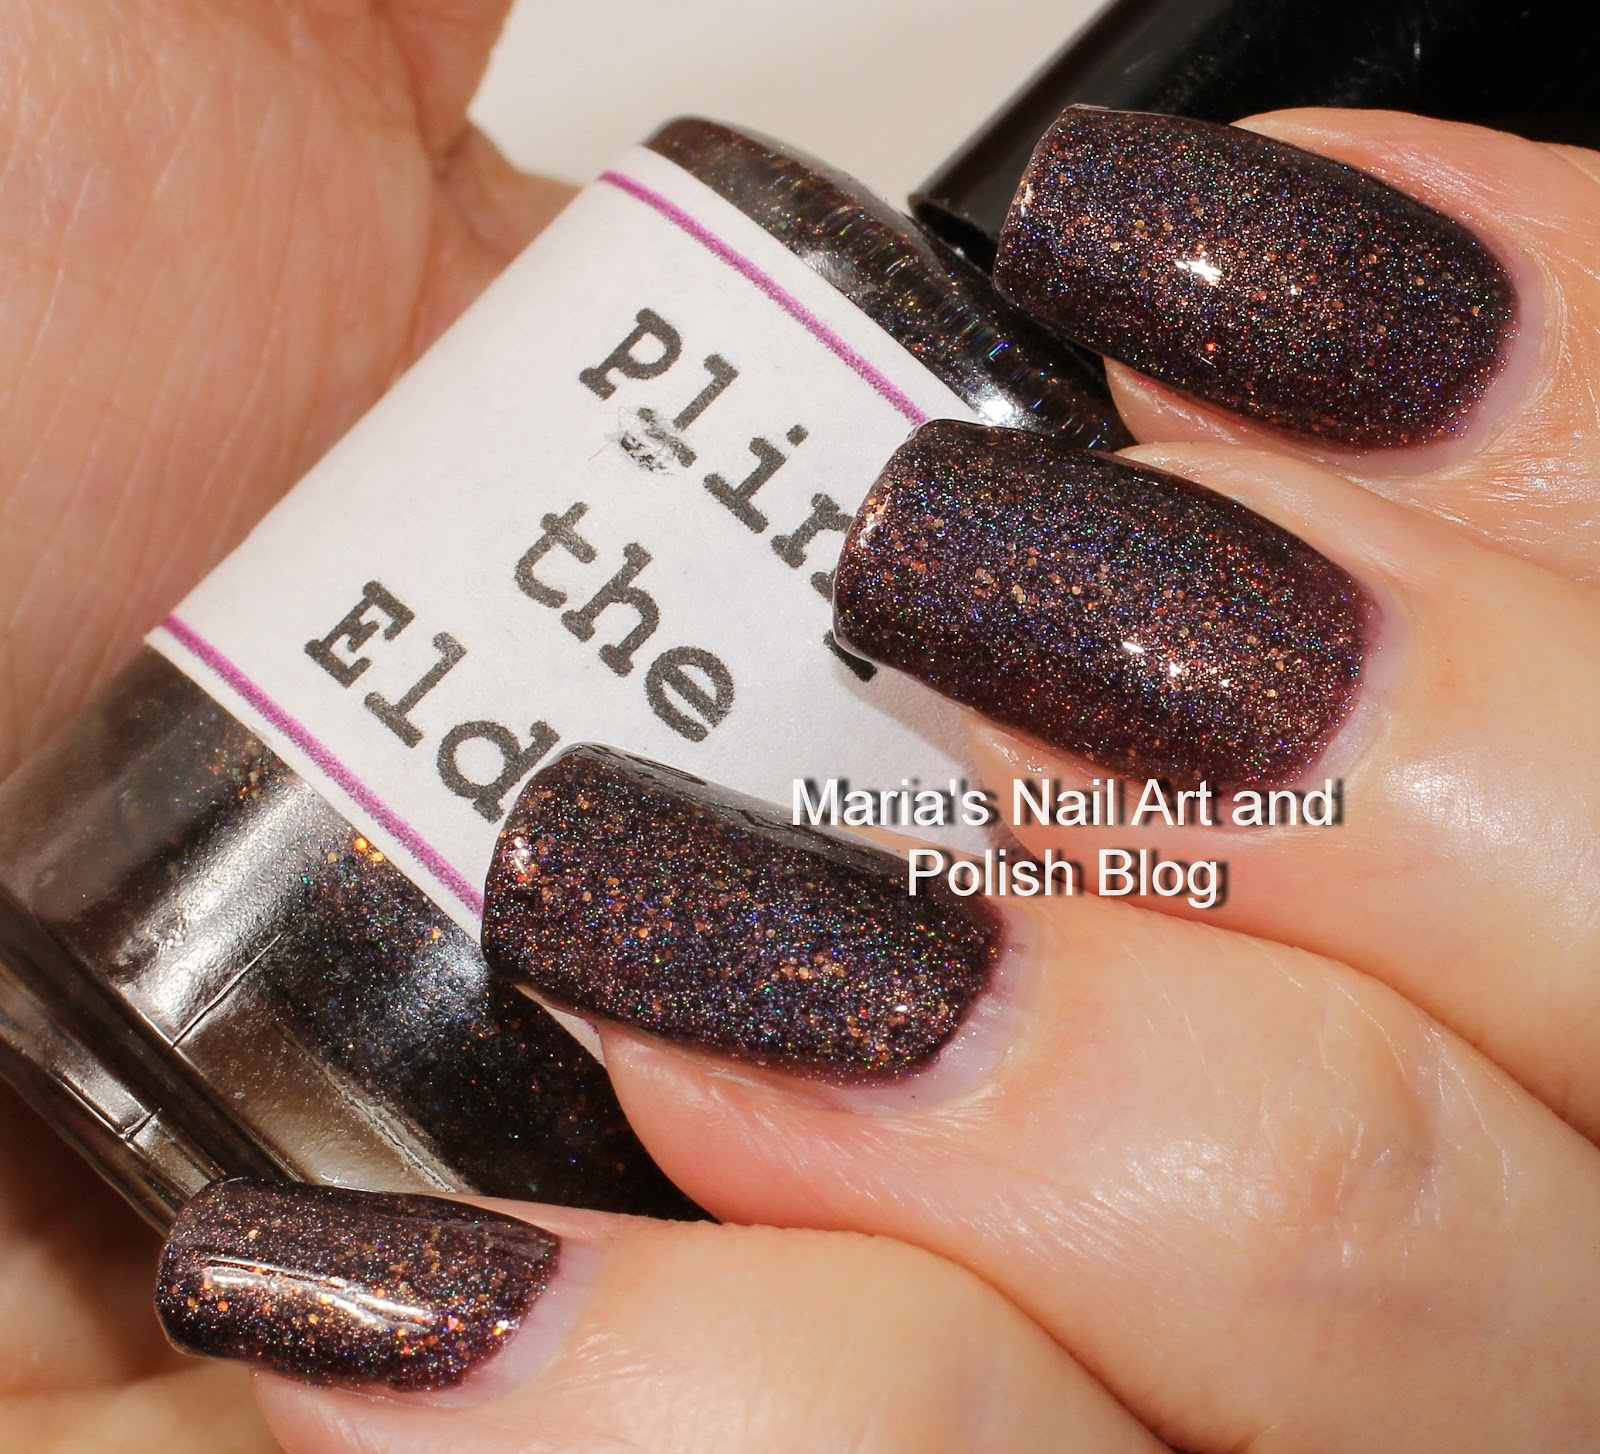 Marias Nail Art And Polish Blog Flushed With Stripes And: Marias Nail Art And Polish Blog: LynBDesigns Pliny The